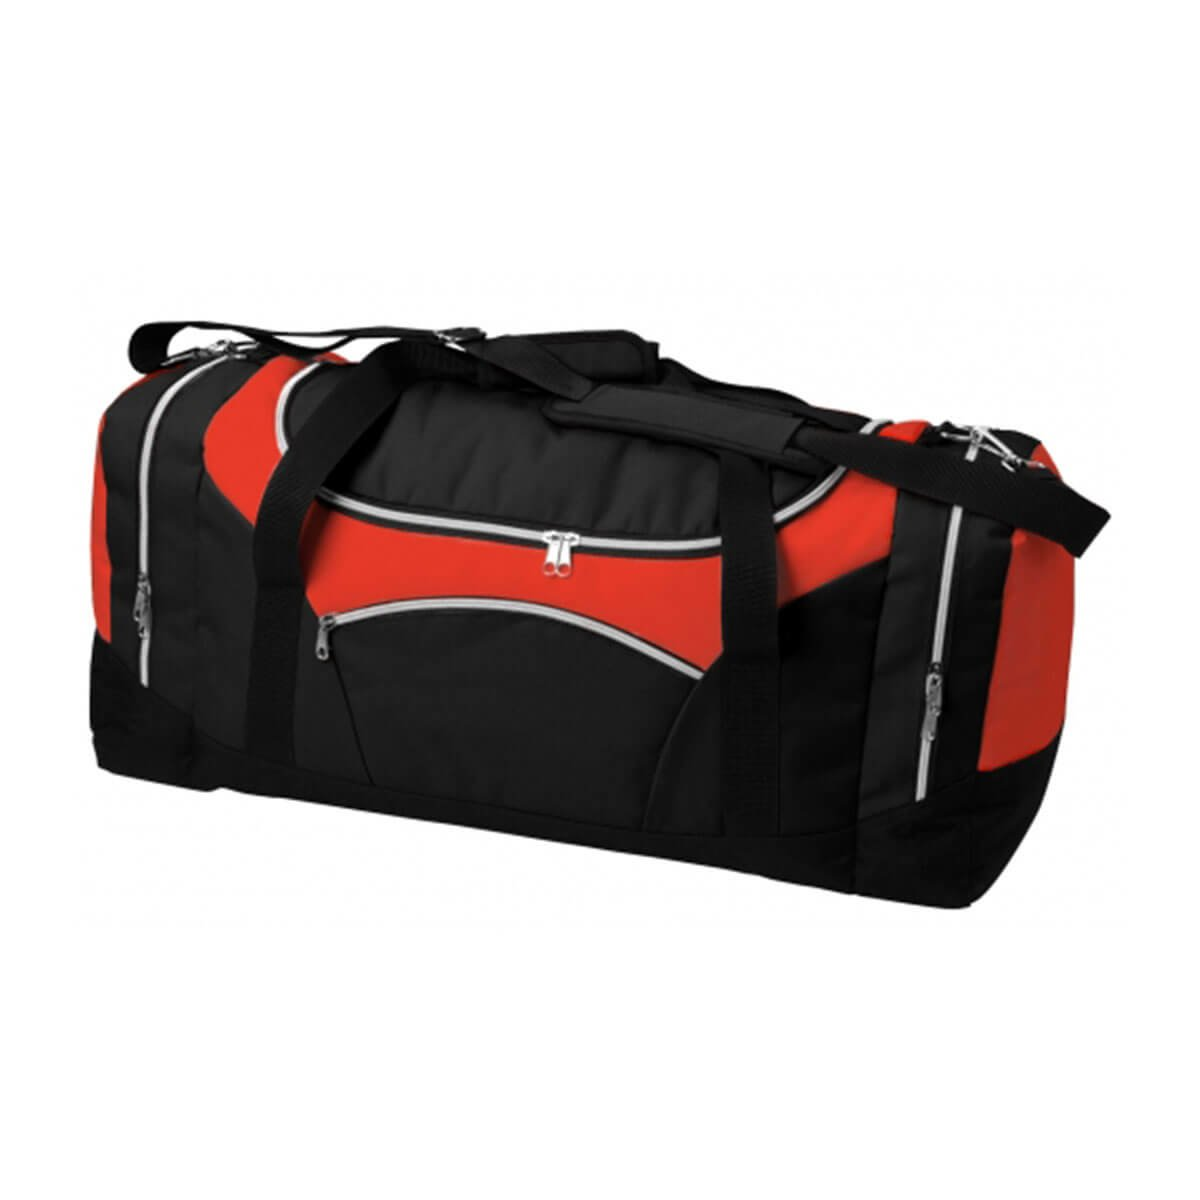 Stellar Sports Bag-Black / Red